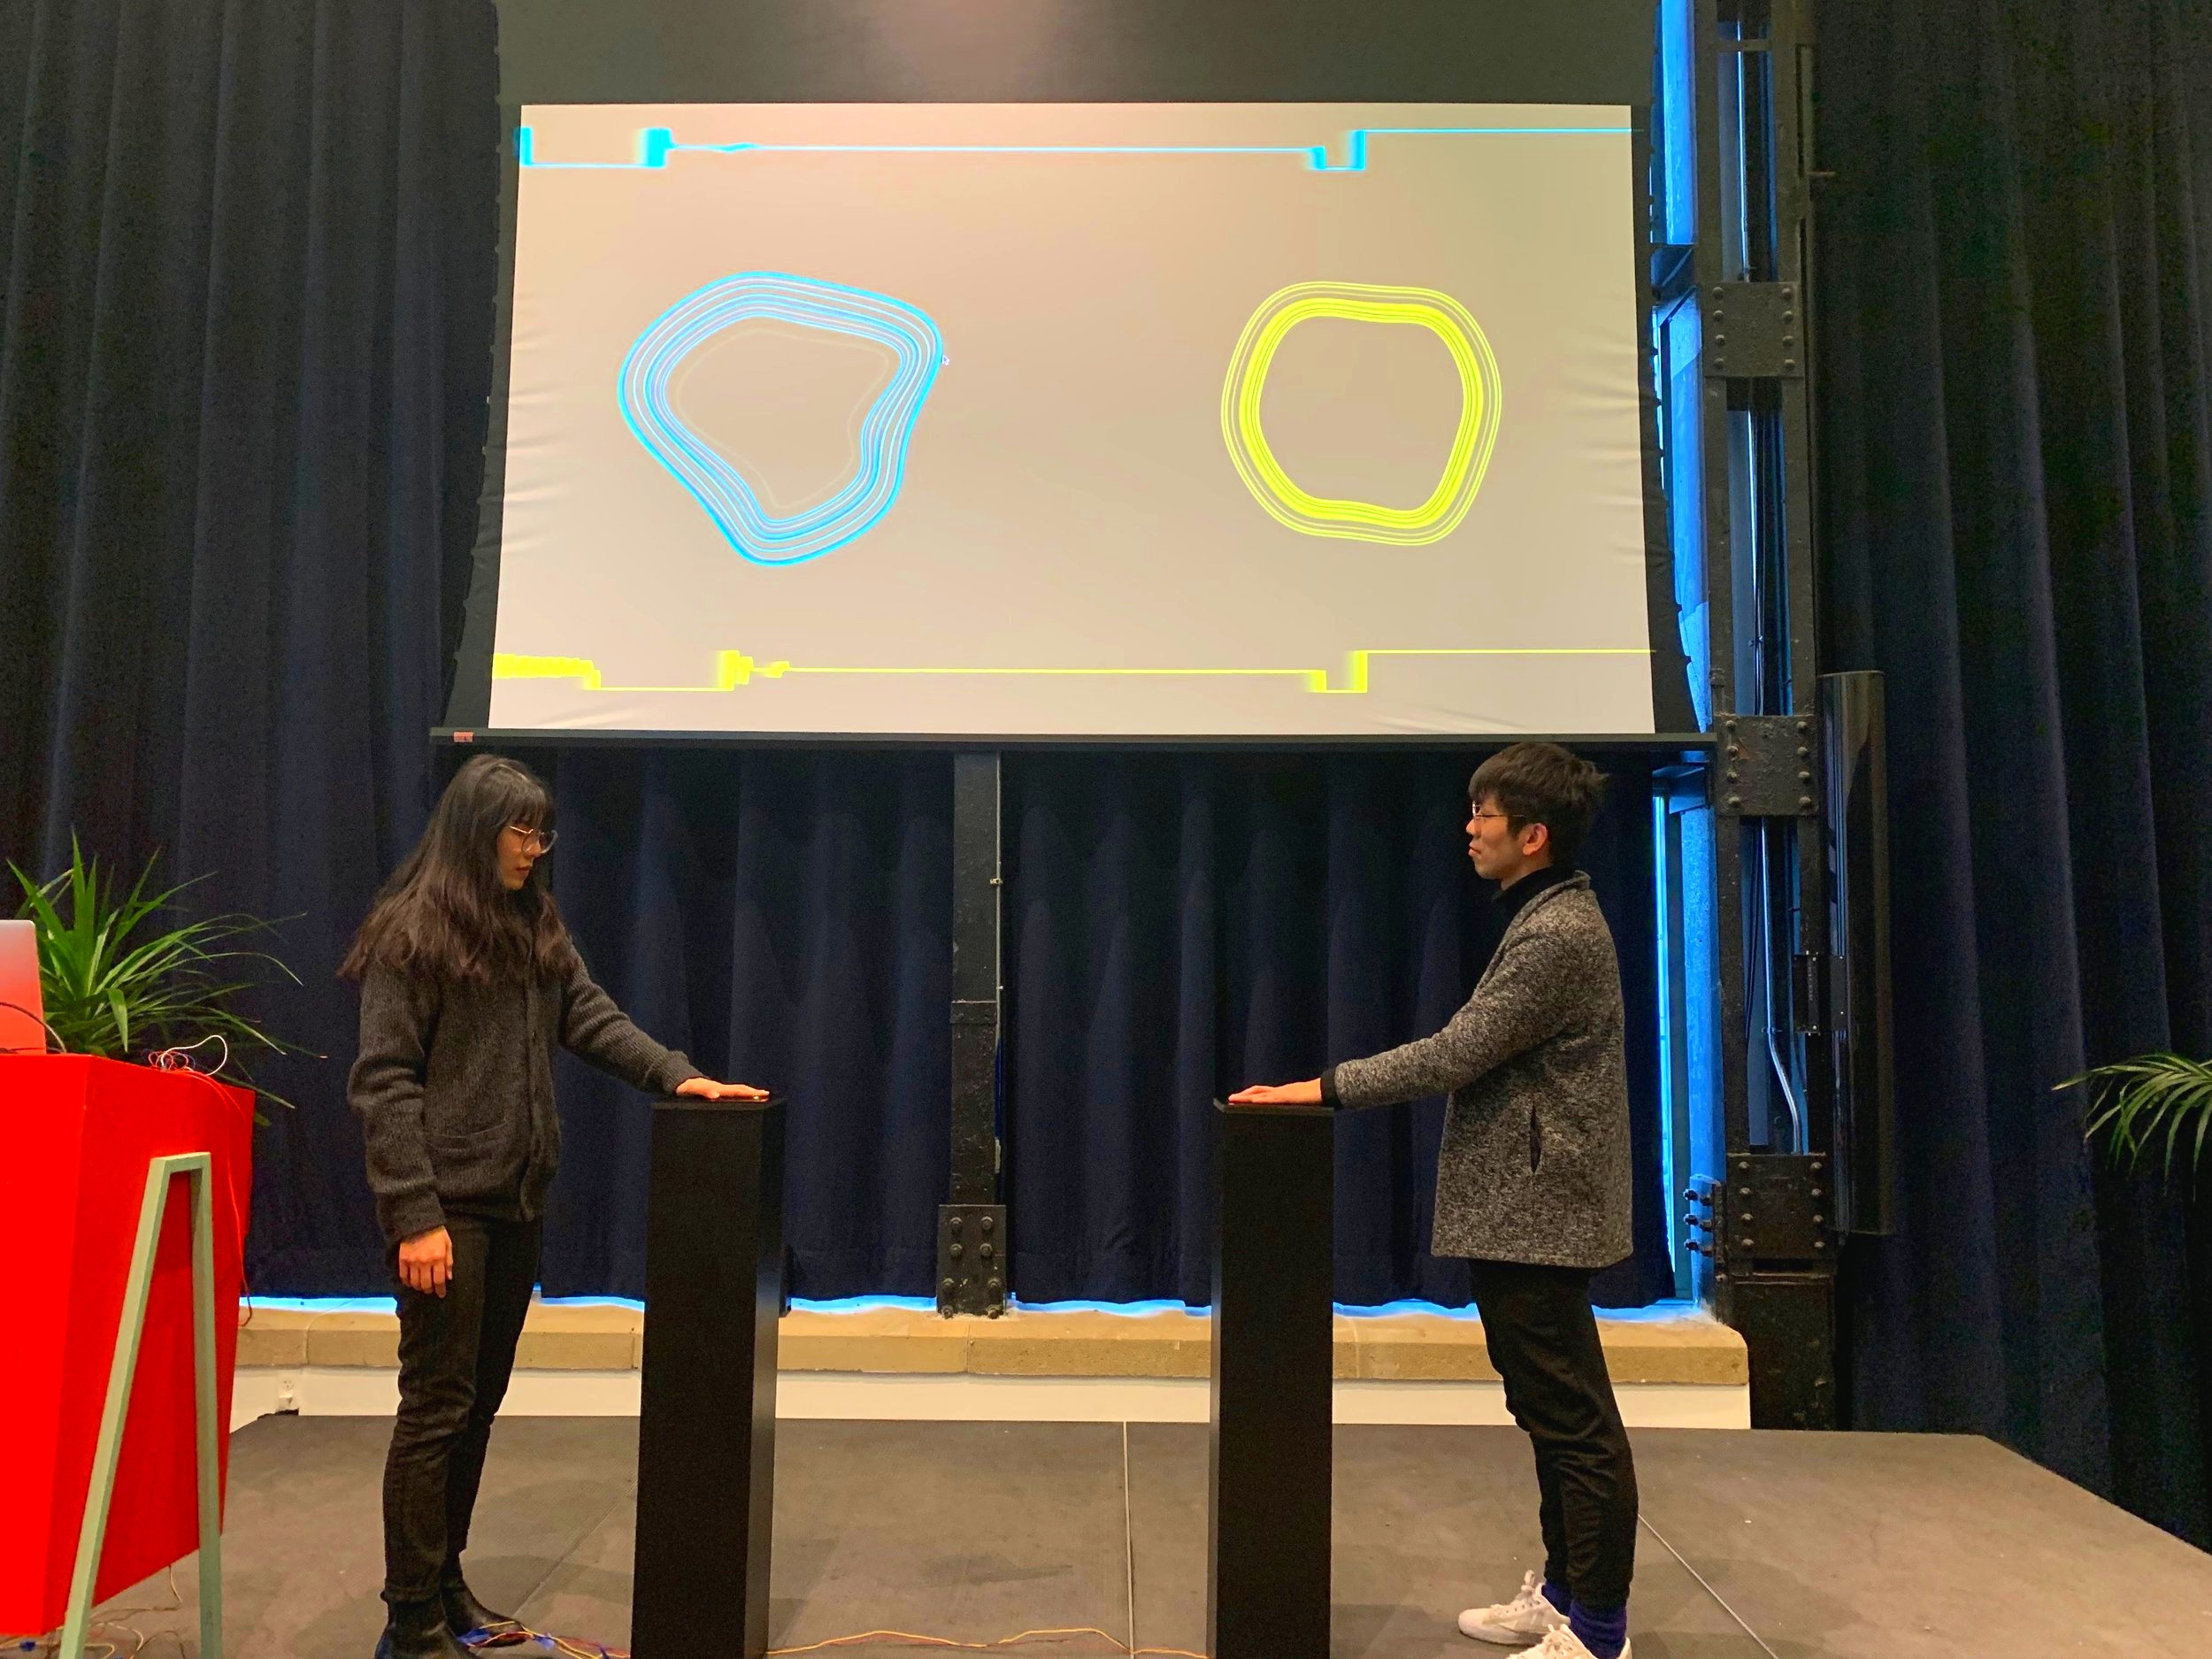 The final project of physical computing ft. code literacy was presented at New Lab